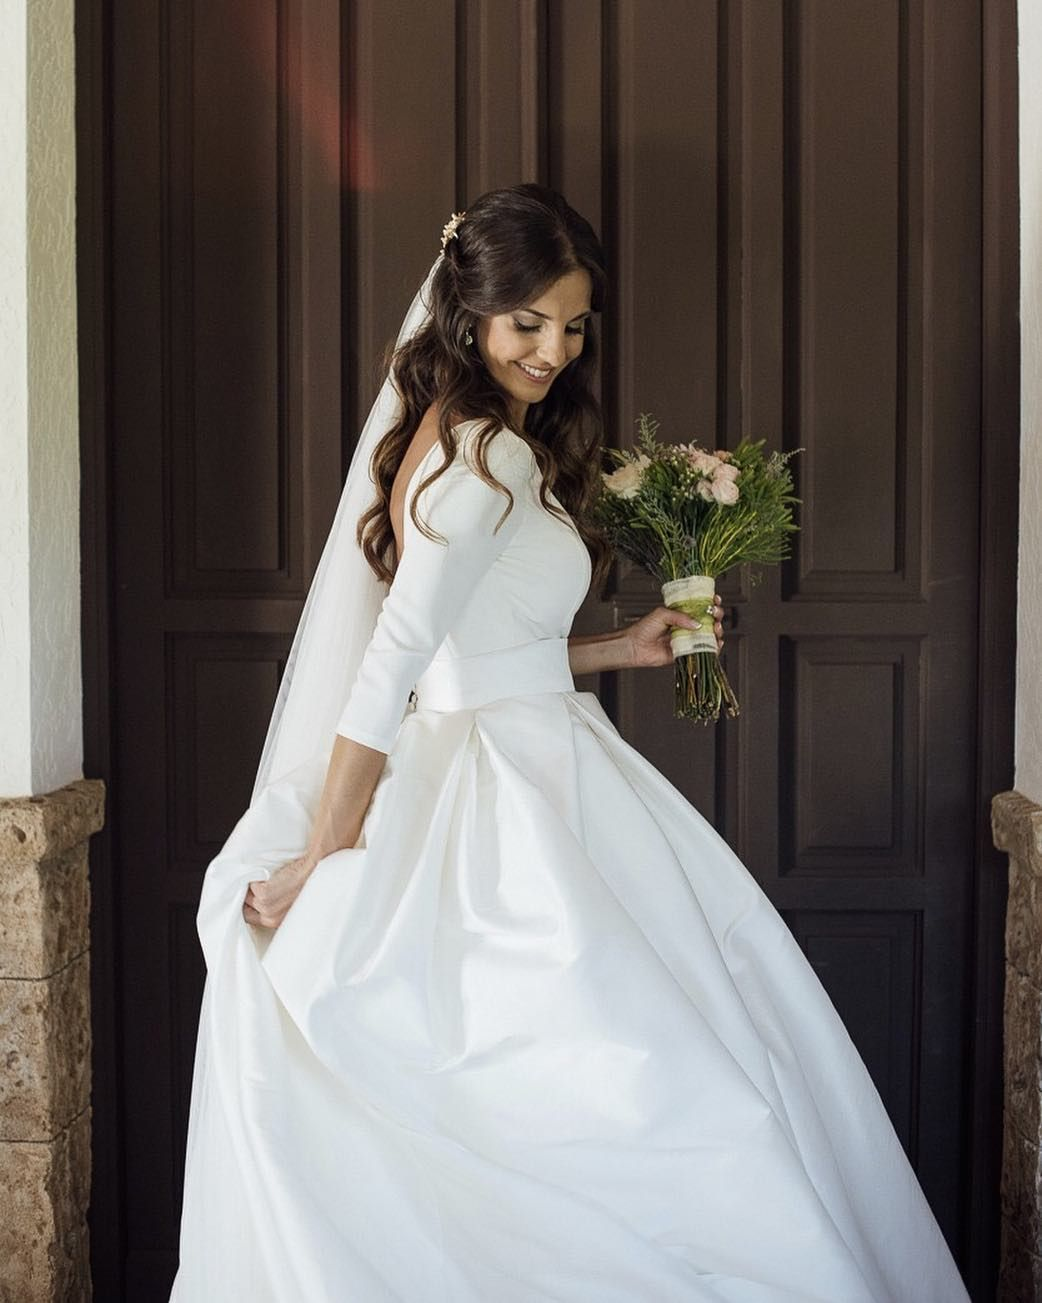 Couture backless ball gown wedding dress 2018 puffy soft satin couture backless ball gown wedding dress 2018 puffy soft satin long sleeves bridal gowns with pockets ombrellifo Image collections